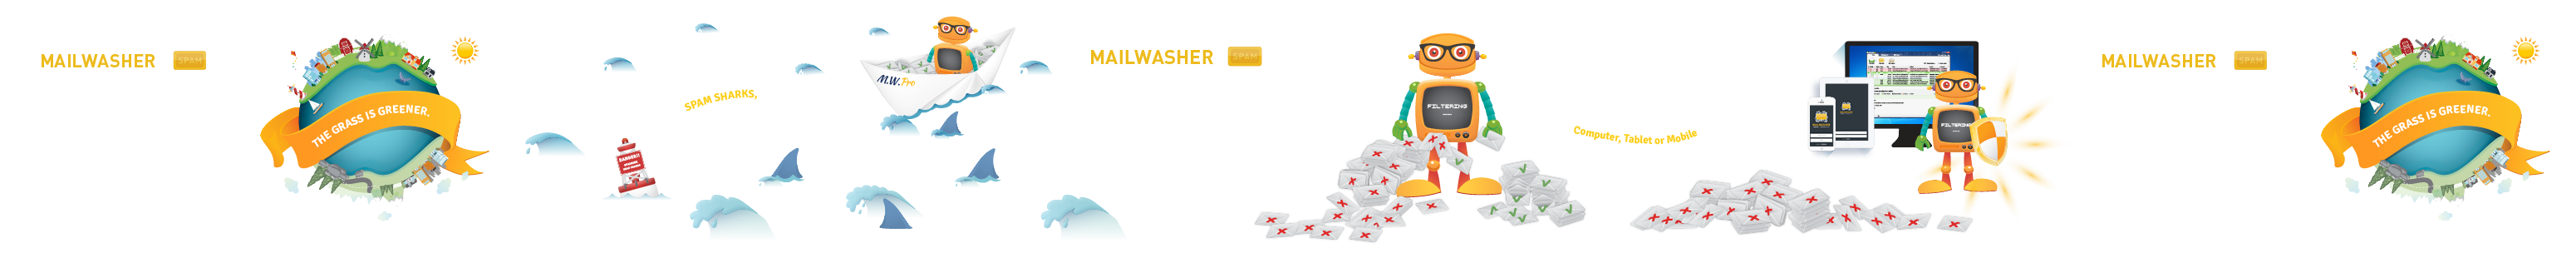 Mailwasher free the popular. Mailbox clipart junk mail